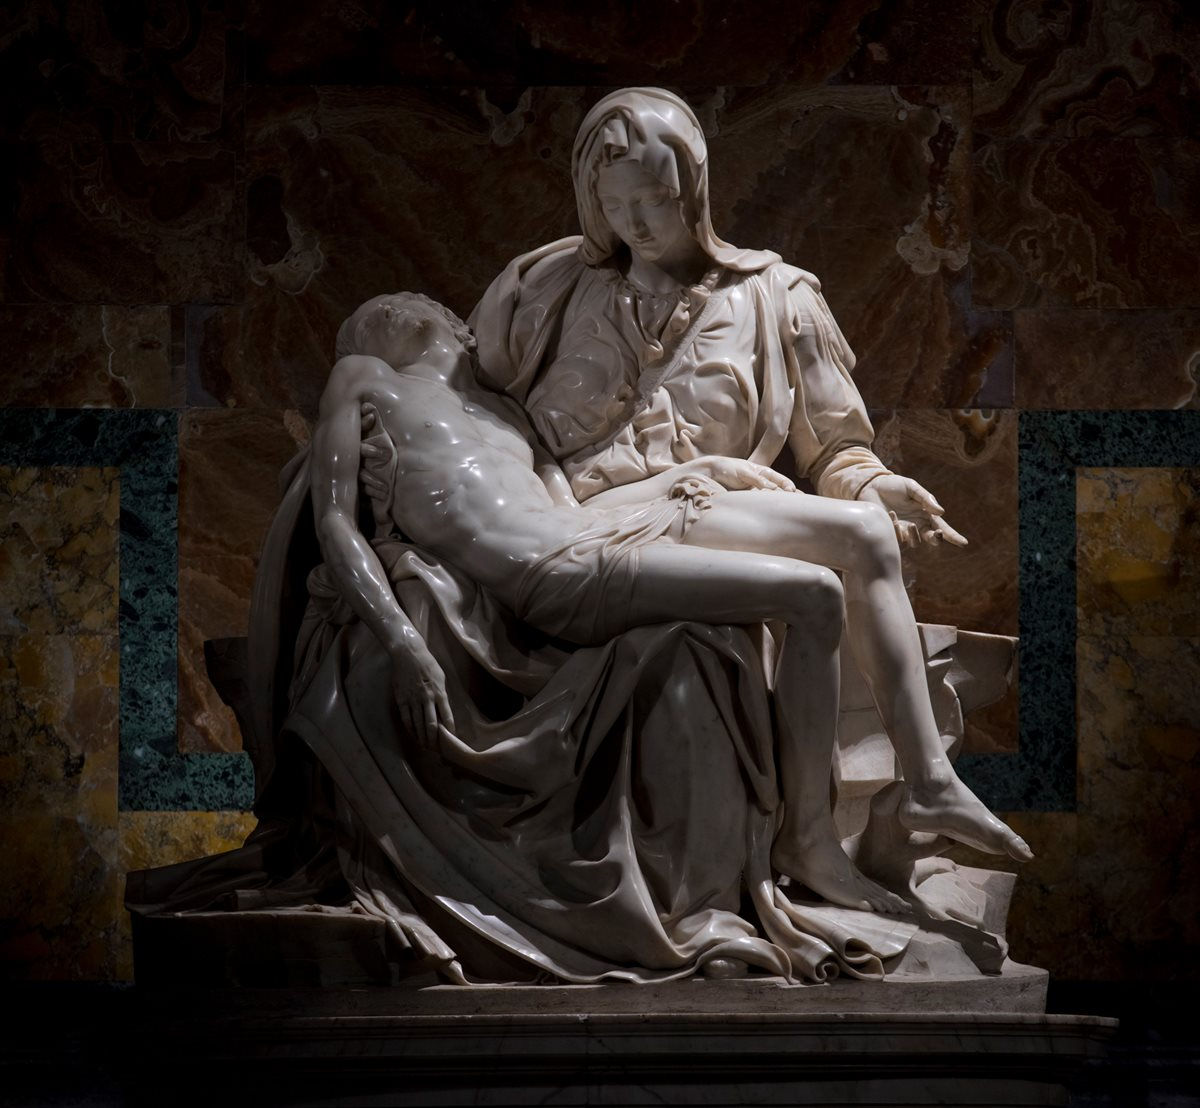 iGuzzini illuminates the Pietà in St. Peter's Basilica